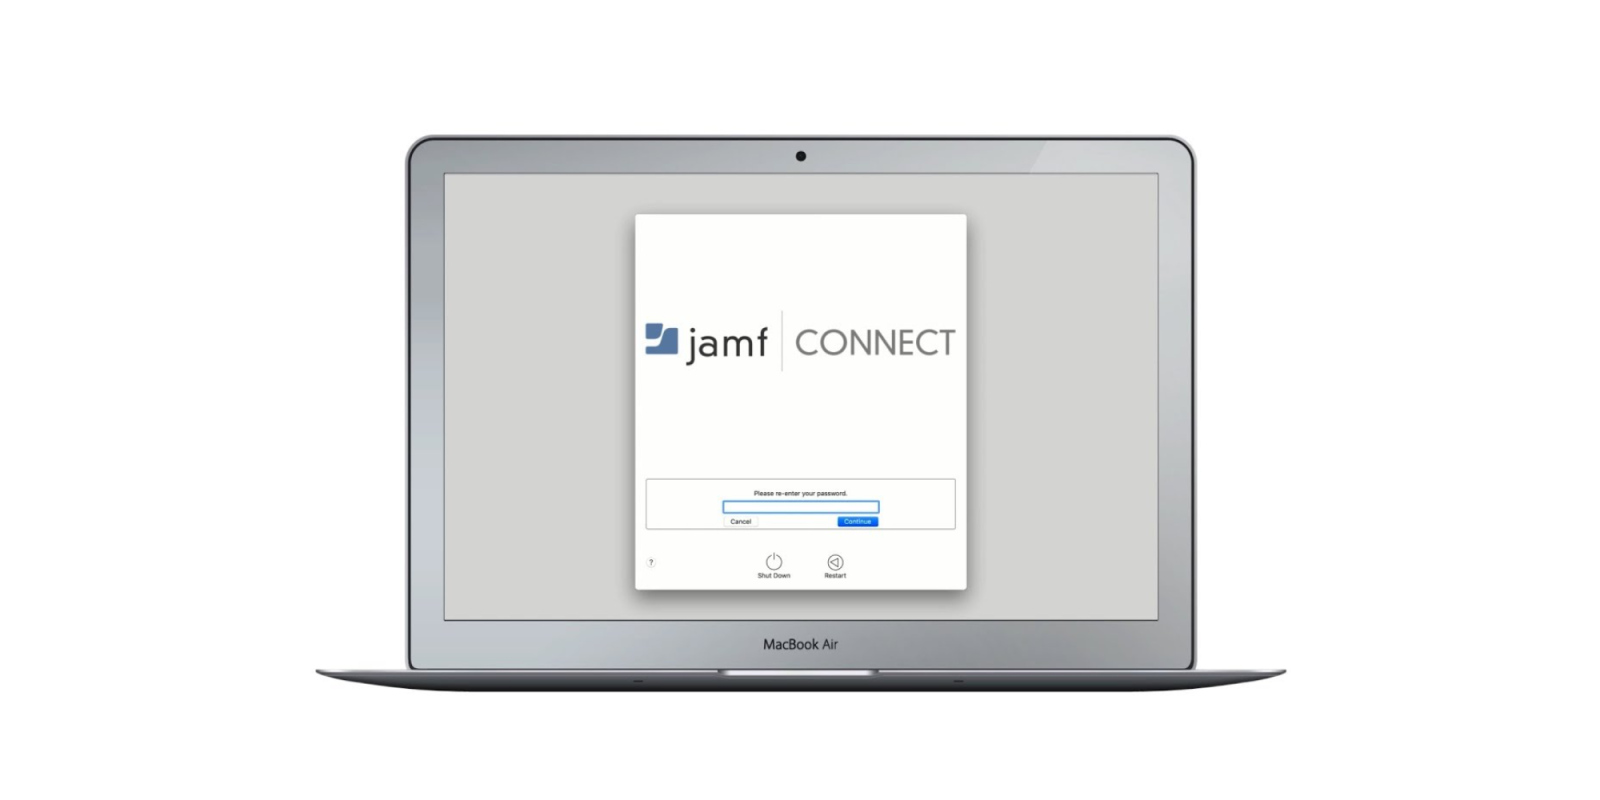 Enterprise macOS login simplified with Jamf Pro and Connect integration